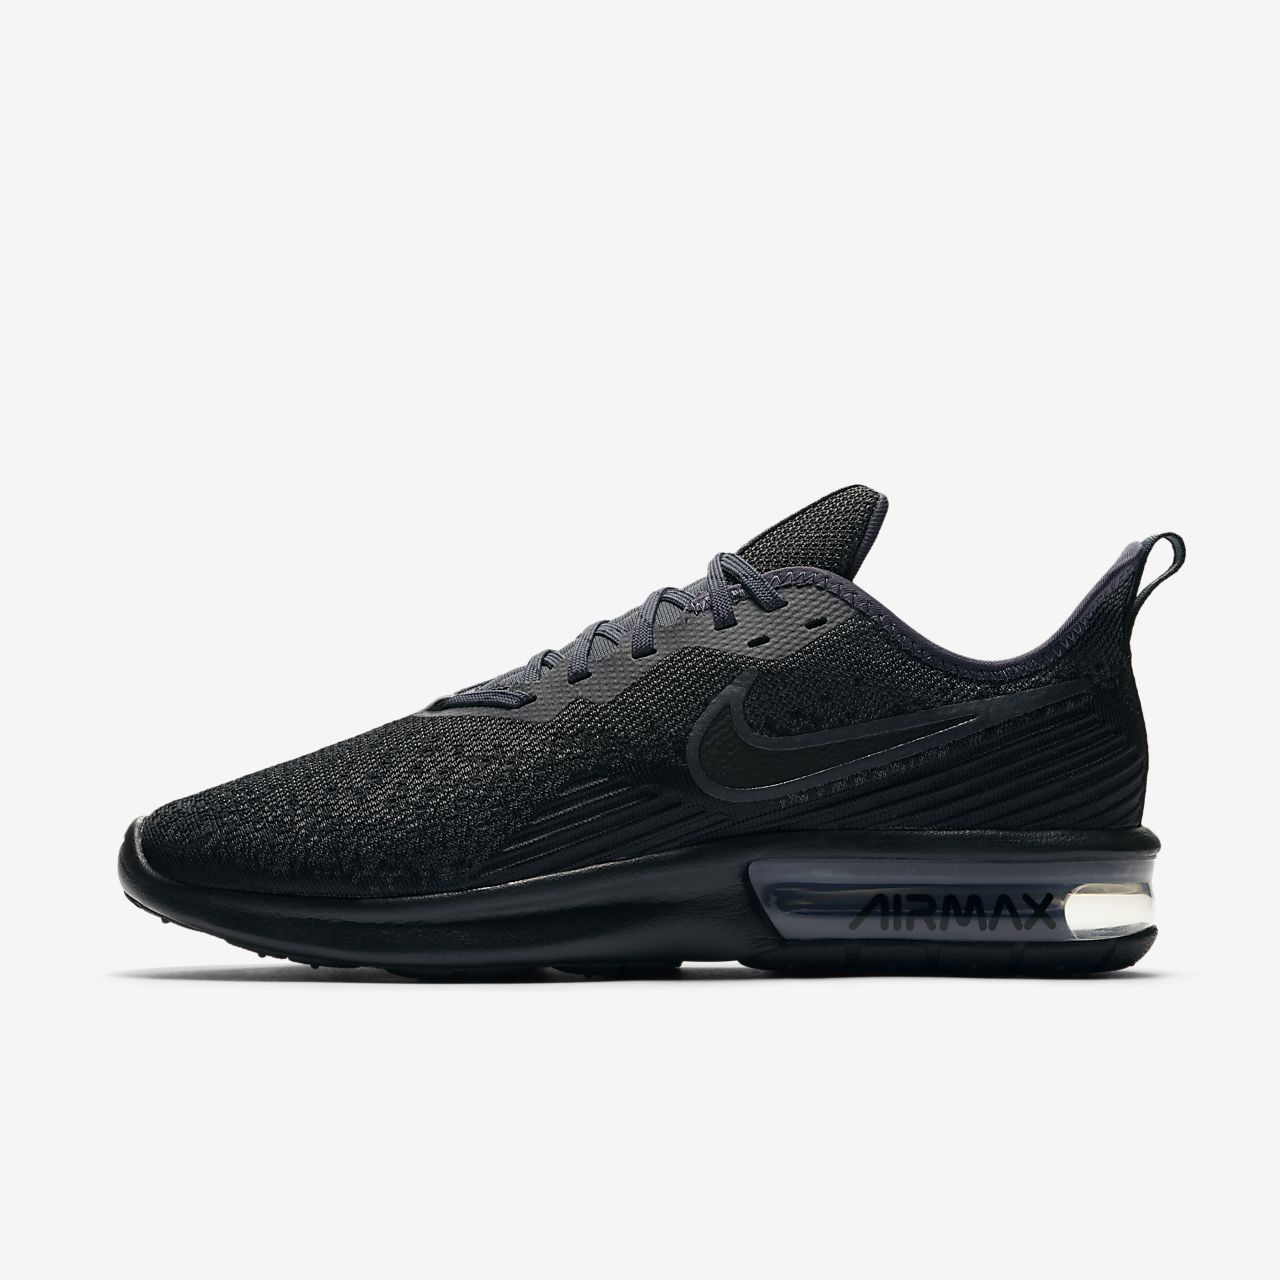 606eafb48d0 Nike Air Max Sequent 4 Men s Shoe. Nike.com AU